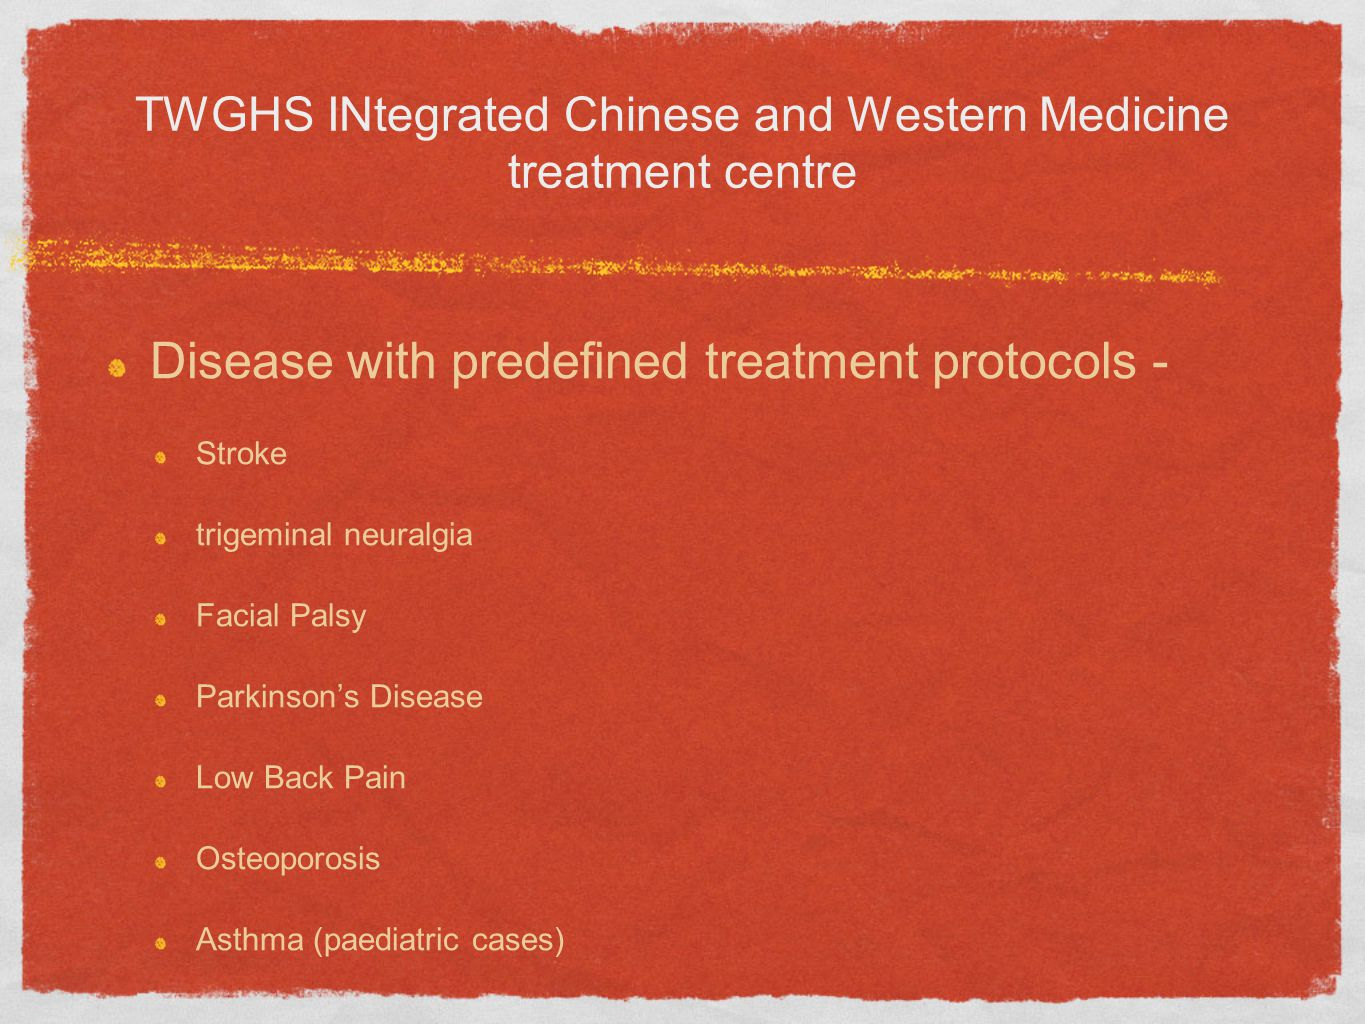 TWGHS INtegrated Chinese and Western Medicine treatment centre Disease with predefined treatment protocols - Stroke trigeminal neuralgia Facial Palsy Parkinson's Disease Low Back Pain Osteoporosis Asthma (paediatric cases)